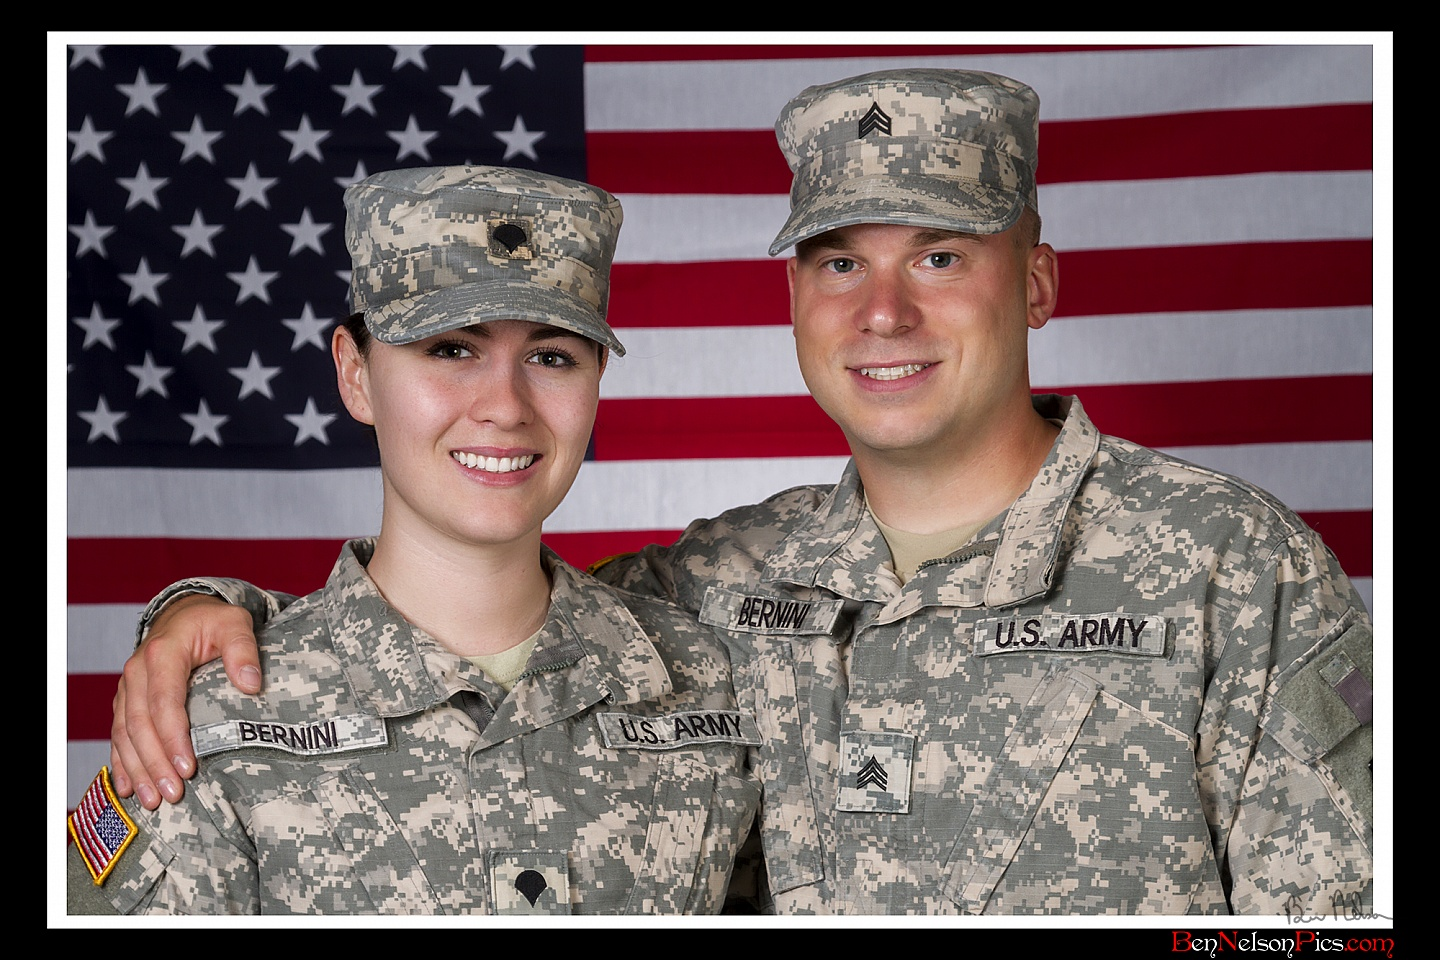 Couples Photos and Engagement Pictures in Springfield Missouri - Couples Photo With American Flag Springfield Missouri.